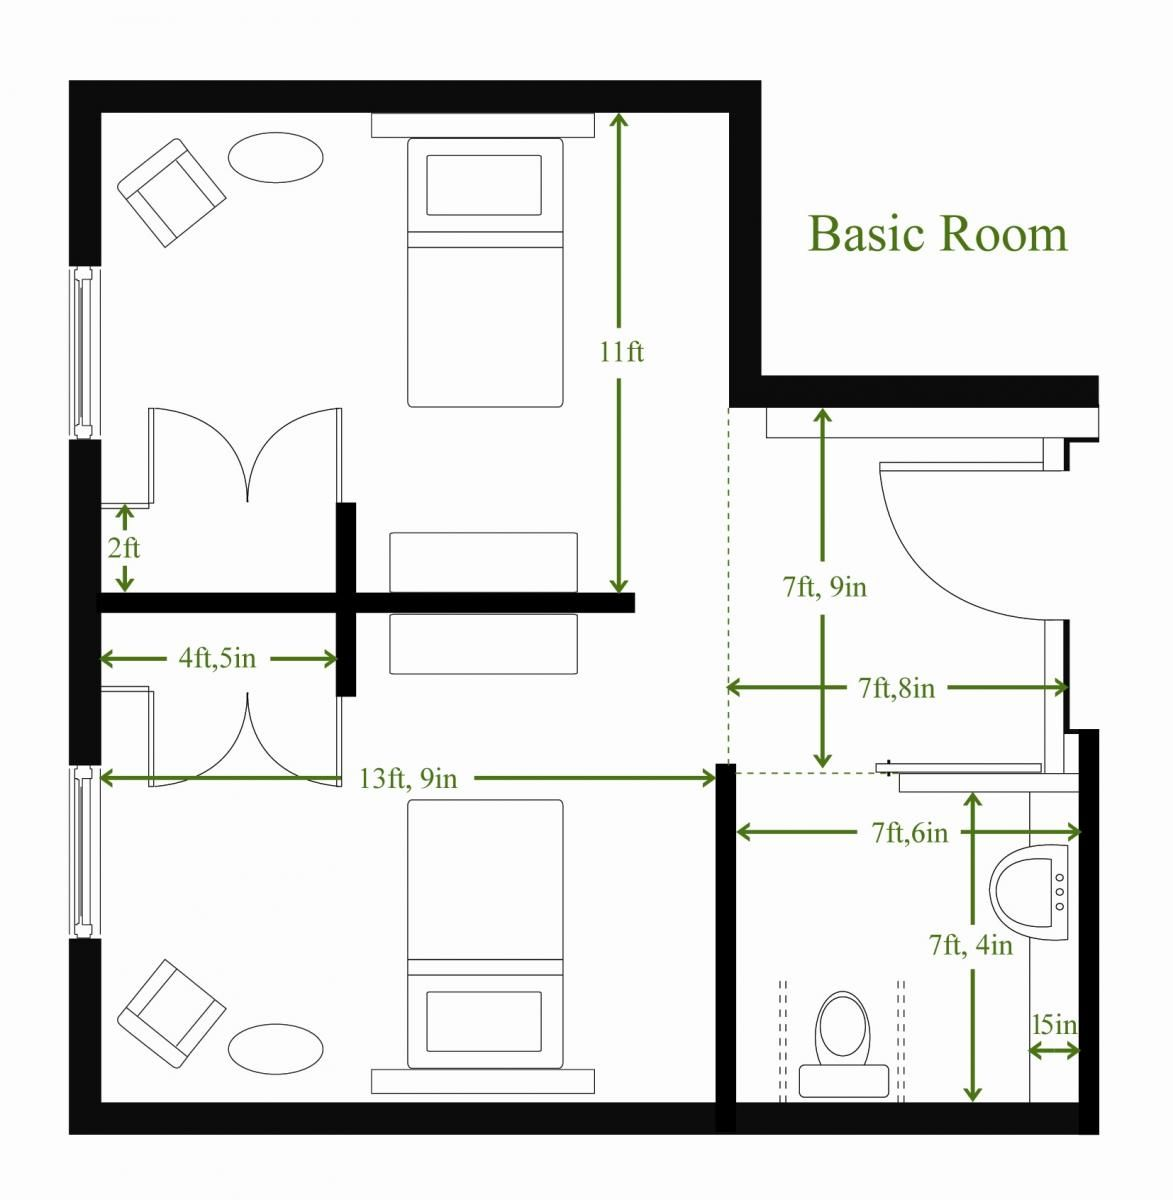 Pin By Cherlyn Kuecker On Project Senior Living Pinterest Room Layout Website Centre And